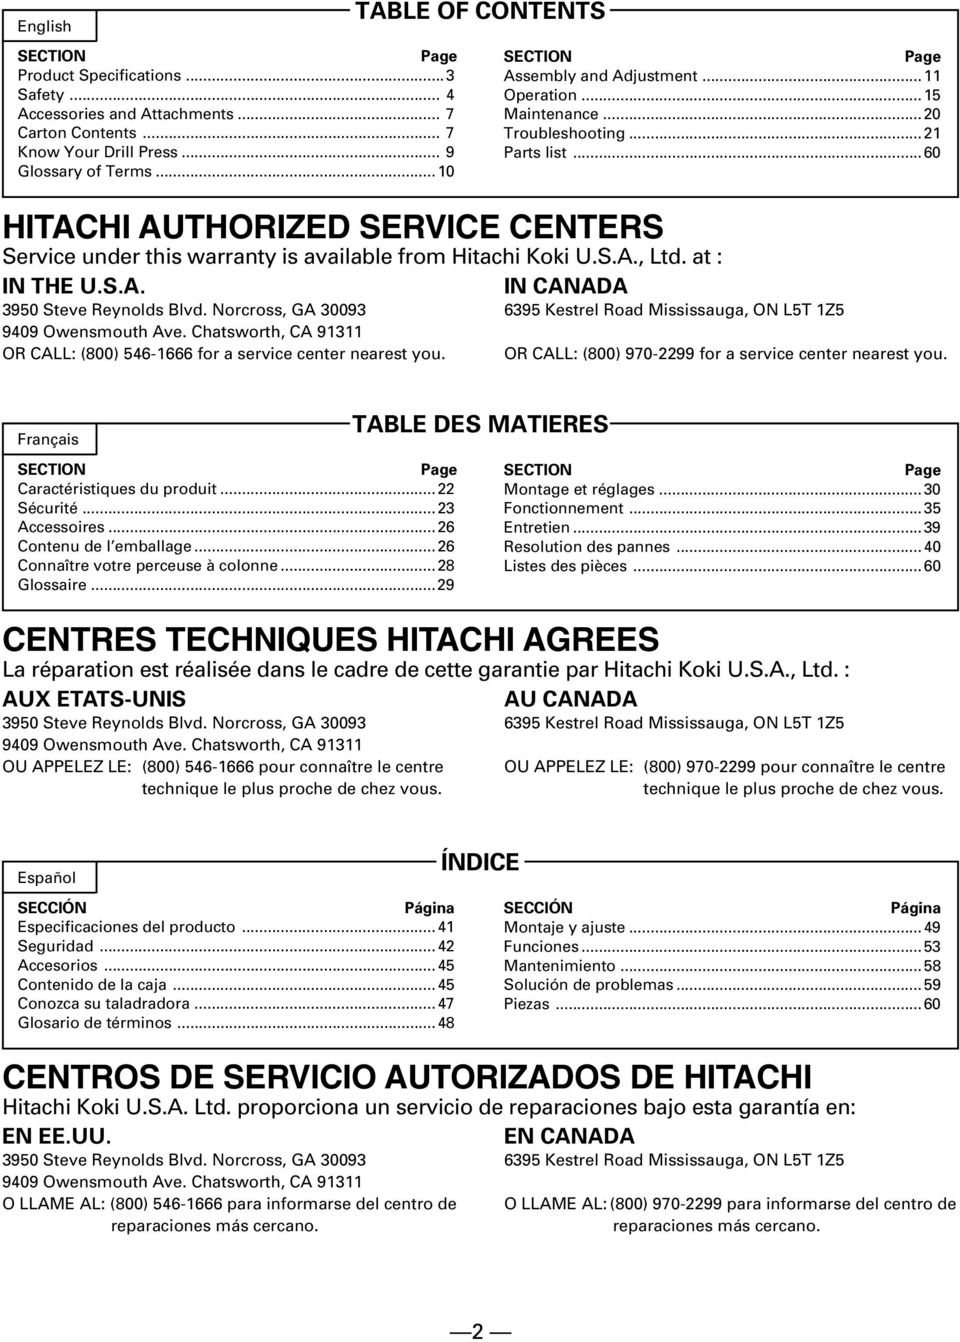 ..60 Service under this warranty is available from Hitachi Koki U.S.A., Ltd. at : IN THE U.S.A. IN CANADA 950 Steve Reynolds Blvd.